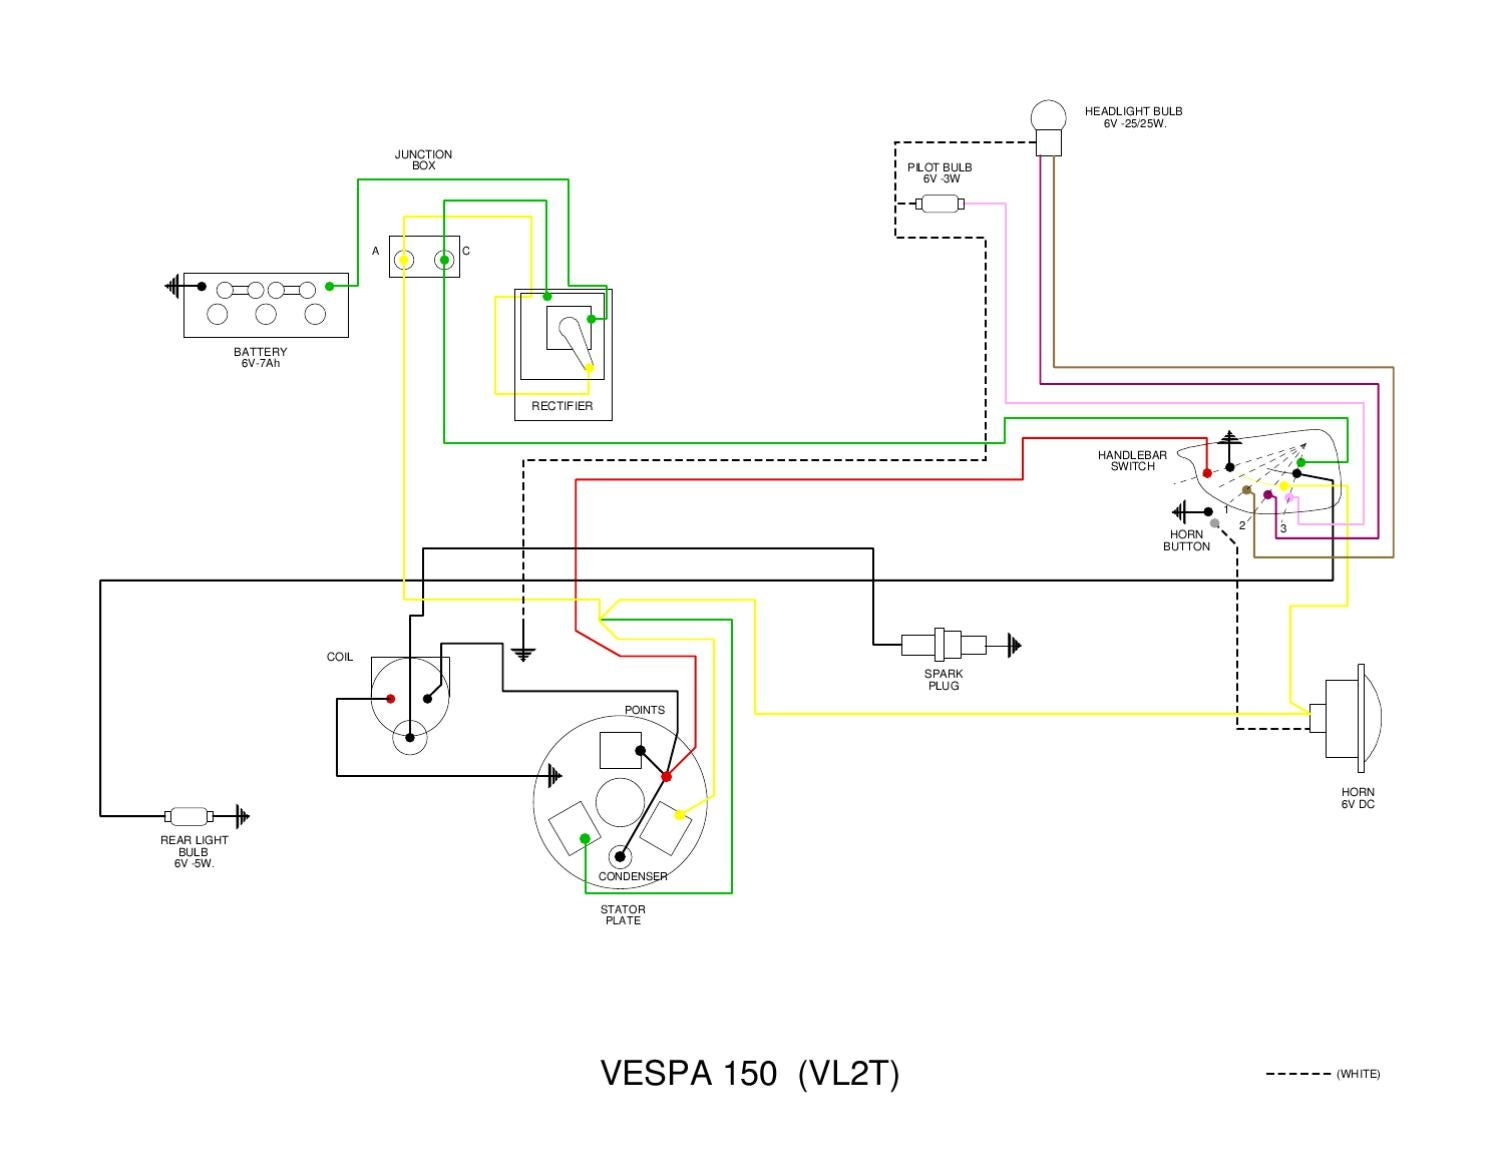 hight resolution of vespa vbb wiring diagram vespa 150 wiring wiring diagram vespa gts 250 wiring diagram chetak wiring